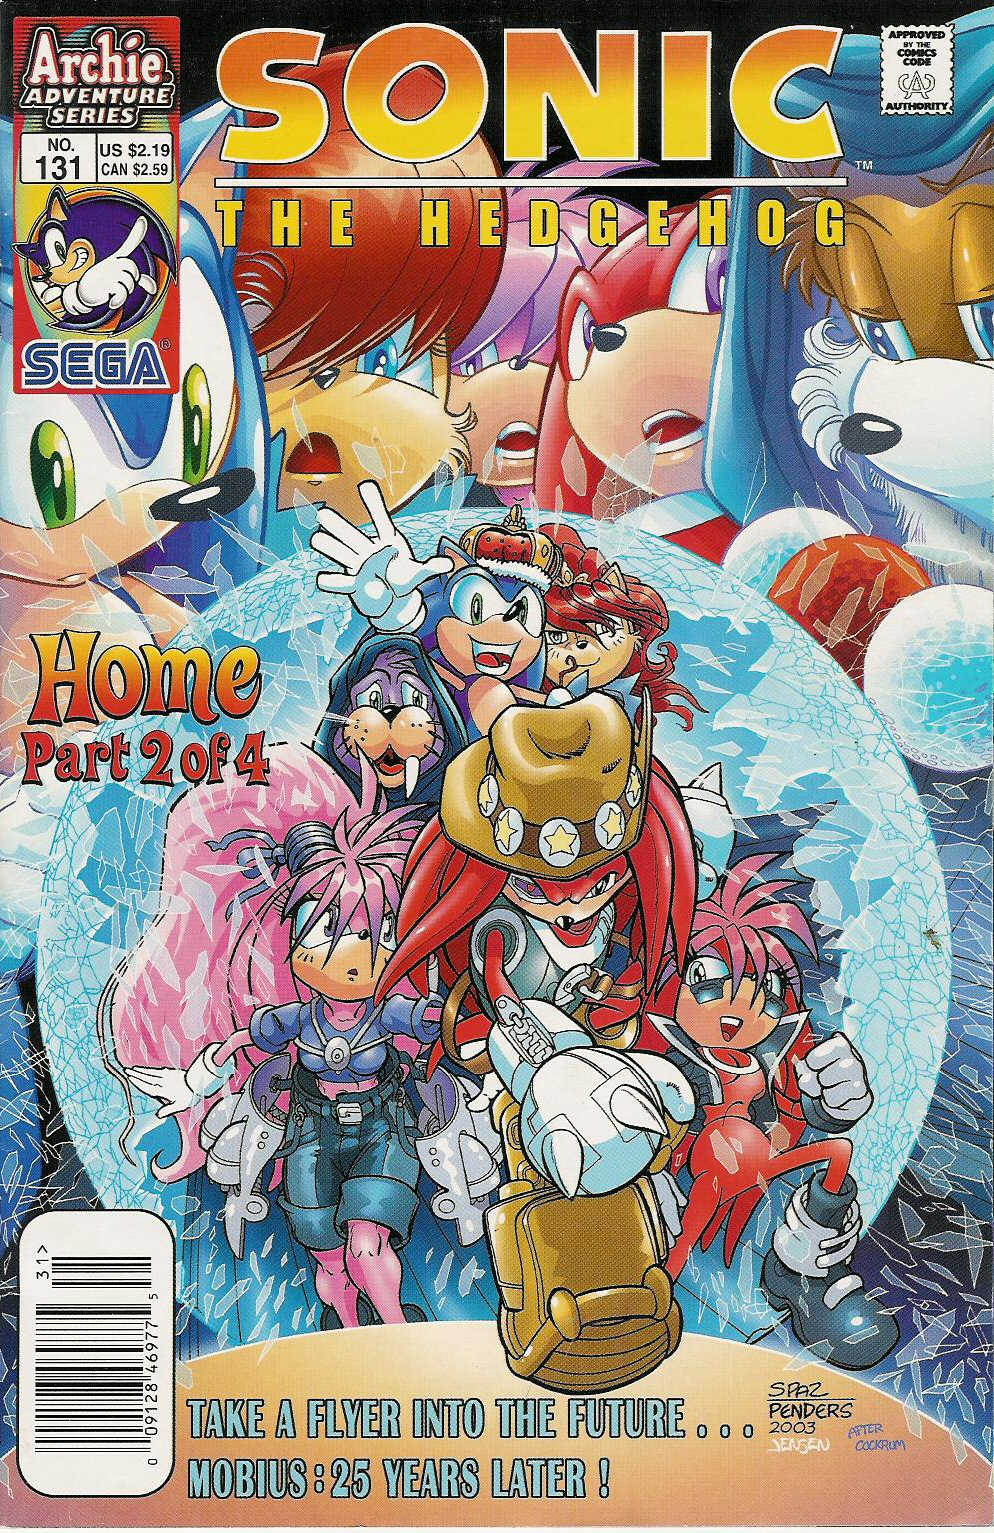 Sonic - Archie Adventure Series March 2004 Comic cover page